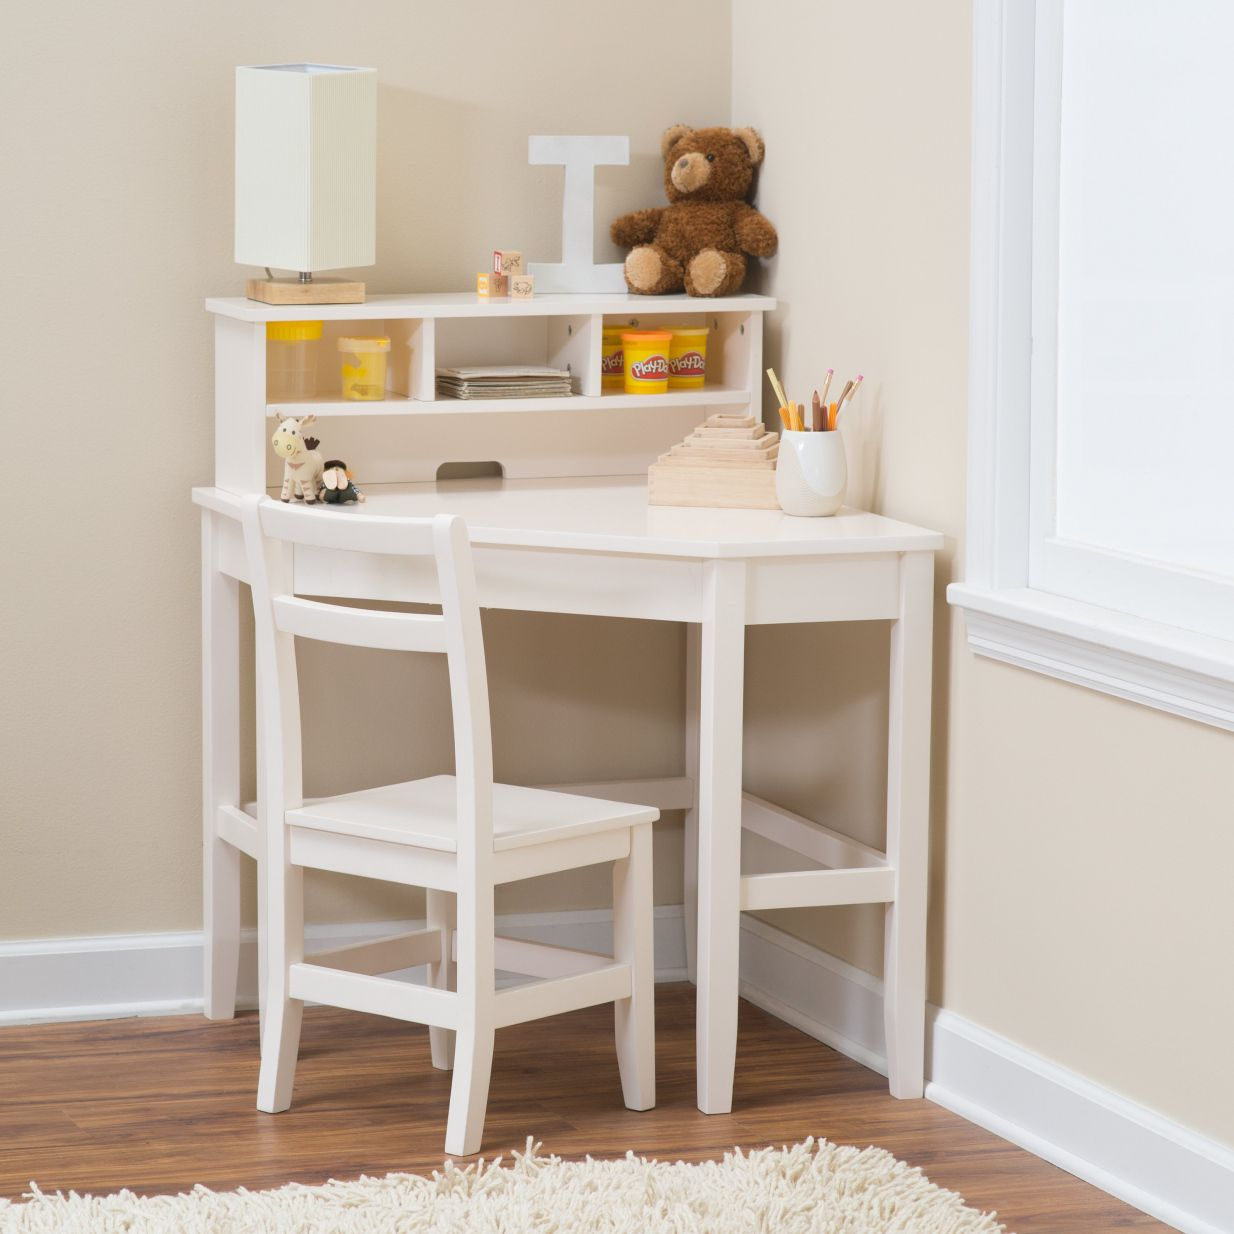 Children S Corner Desk Organization Ideas For Small Desk Check More At Http Www Shophyperformance Com Child Kids Corner Desk Diy Corner Desk Childrens Desk